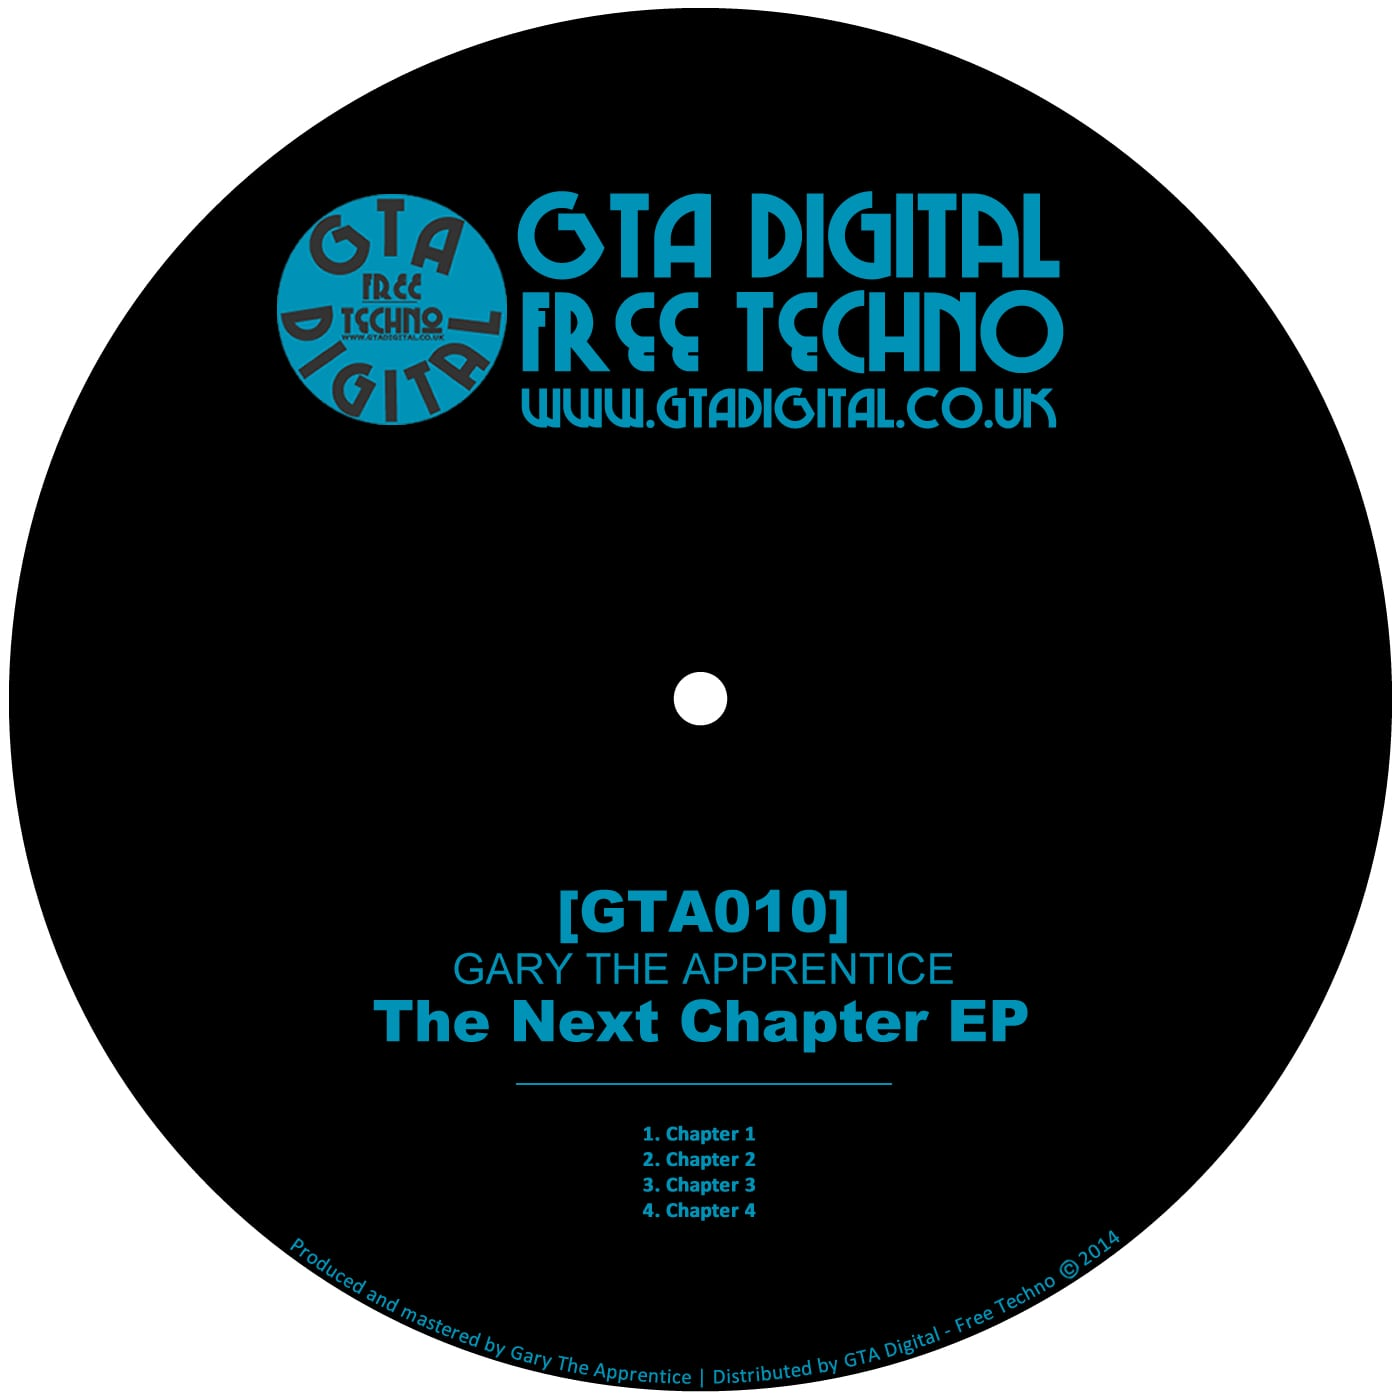 The Next Chapter EP